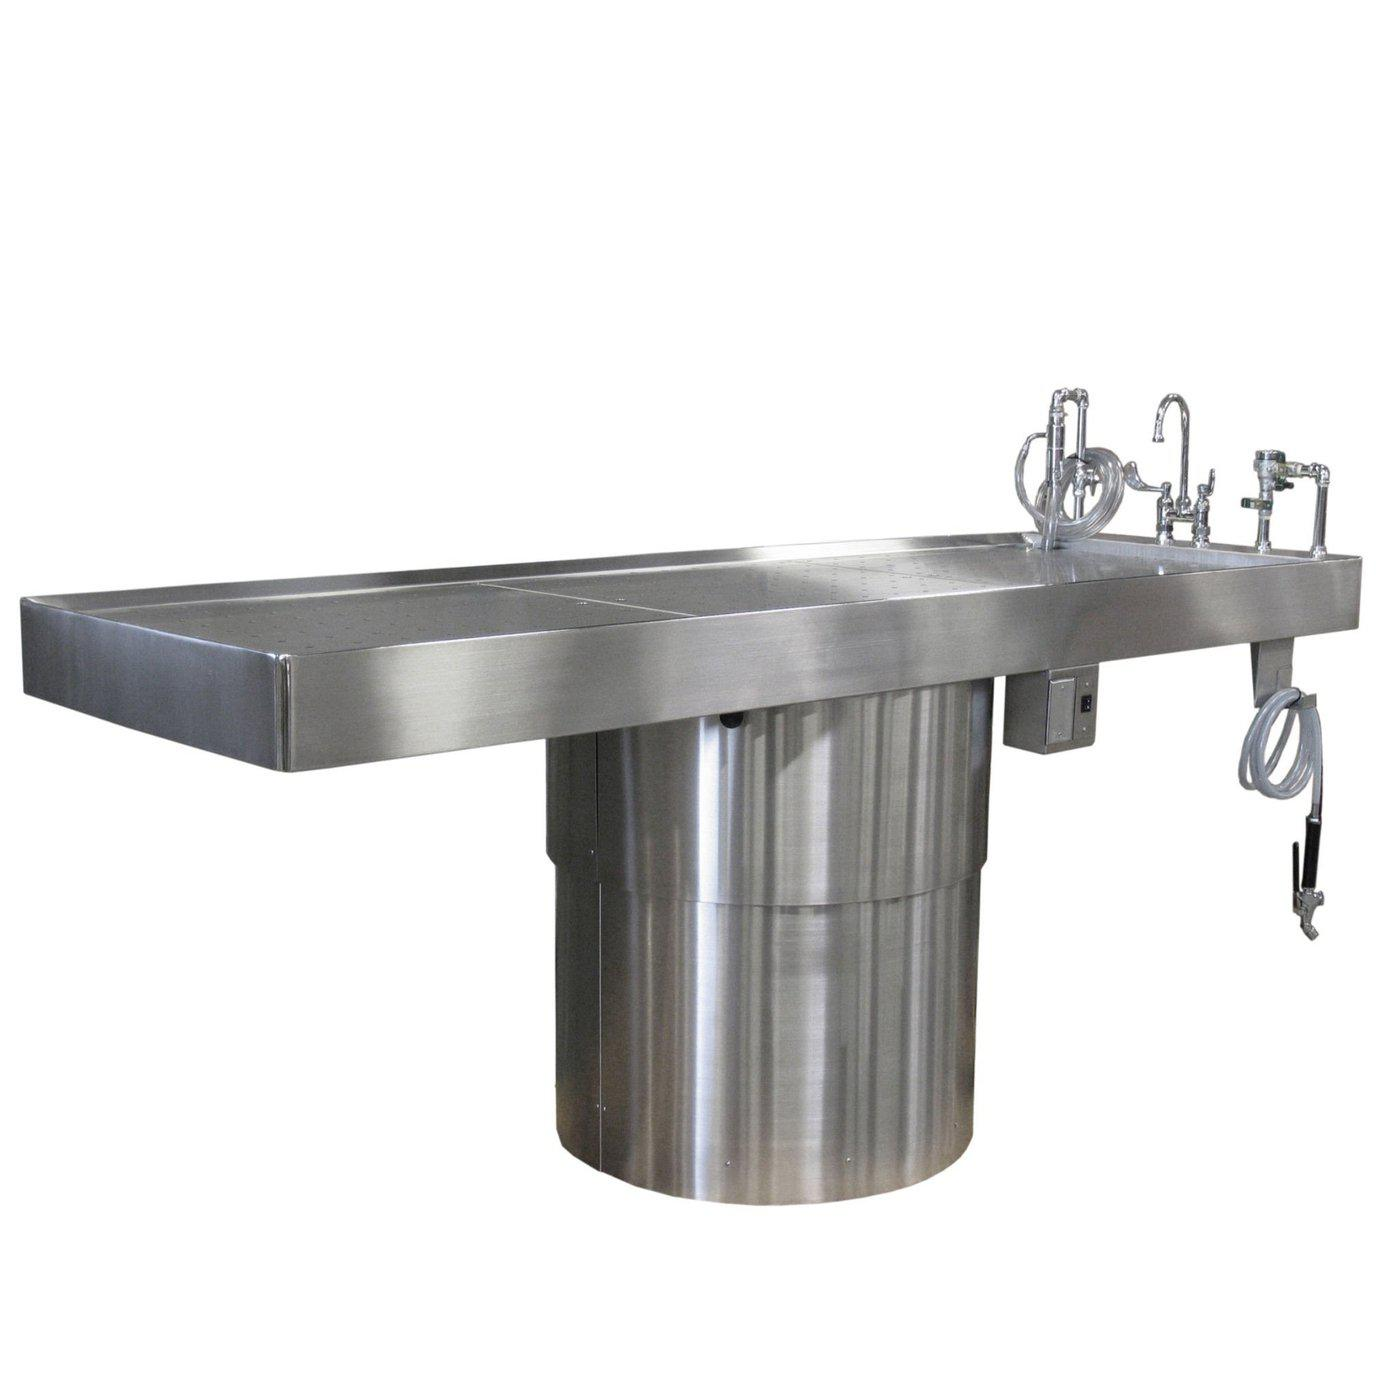 Elevating & Rotating Pedestal Autopsy Table-Pedestal Autopsy Tables-Mortech Manufacturing Company Inc. Quality Stainless Steel Autopsy, Morgue, Funeral Home, Necropsy, Veterinary / Anatomy, Dissection Equipment and Accessories